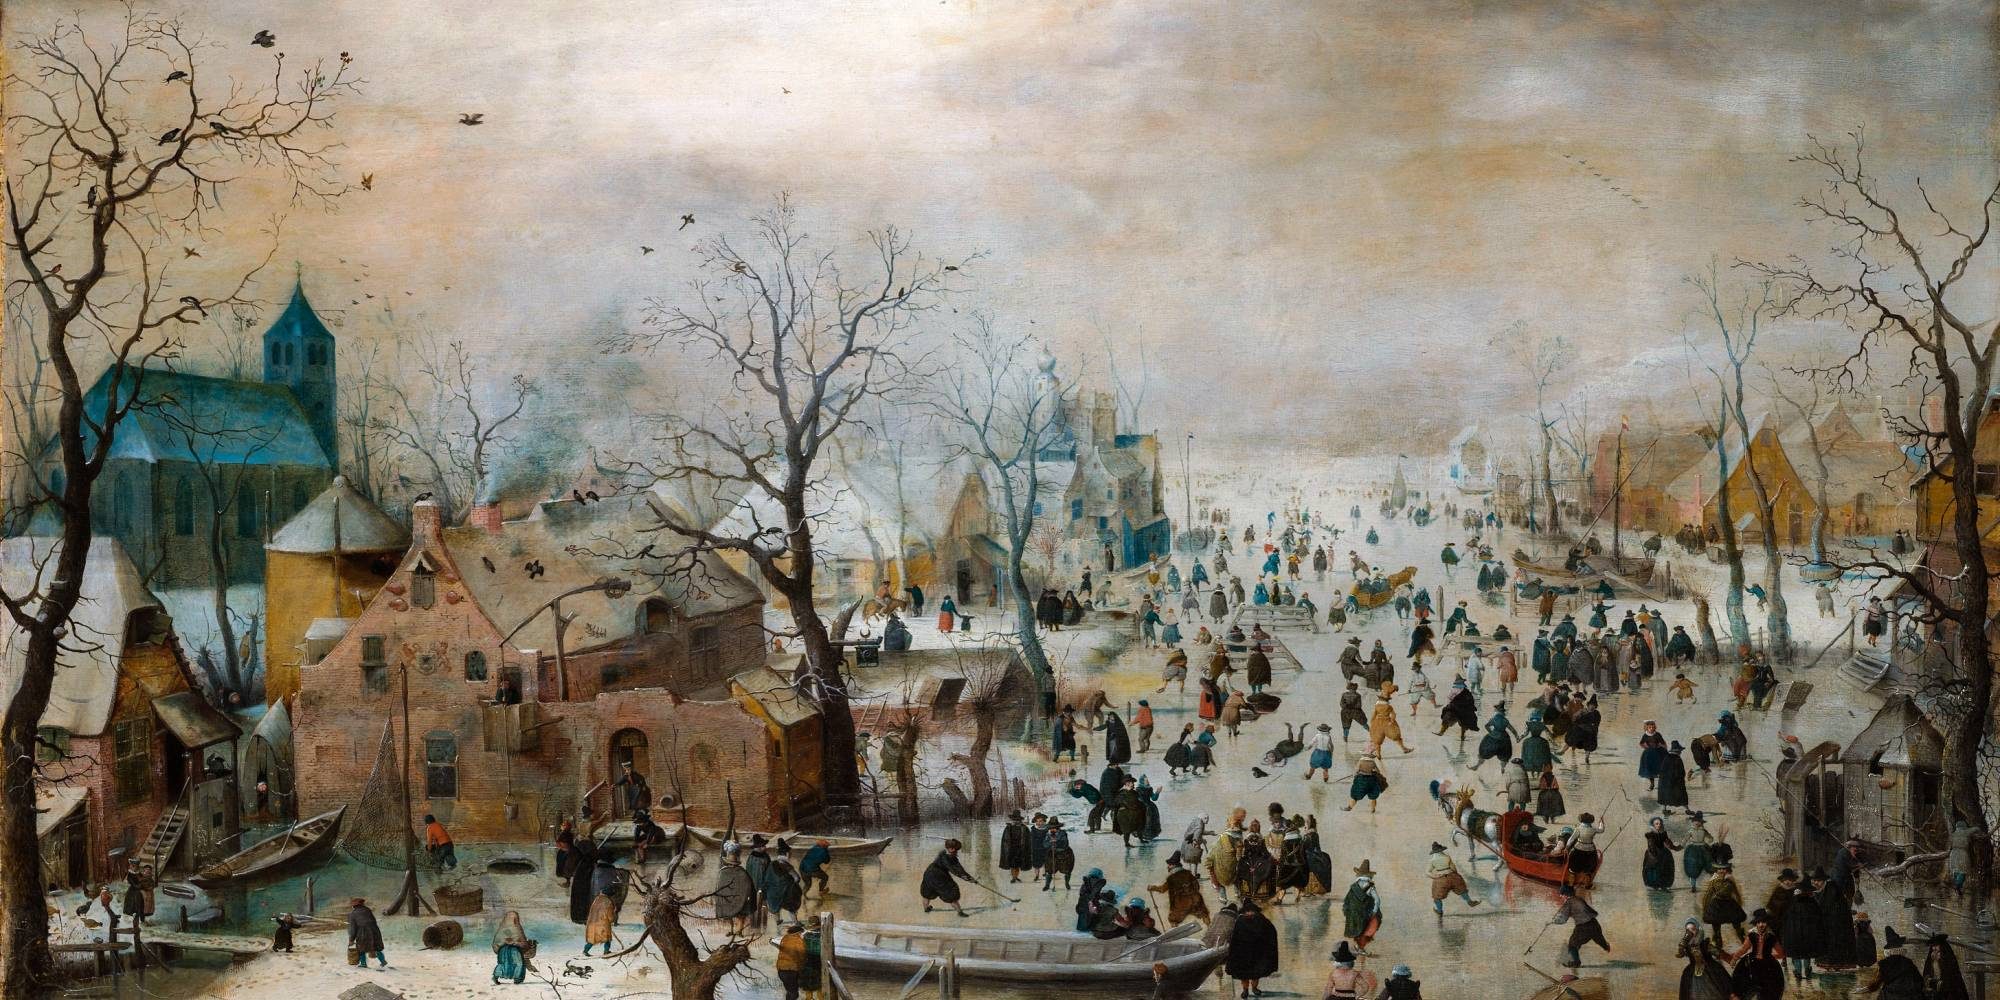 Villagers skating, painting by Hendrick Avercamp